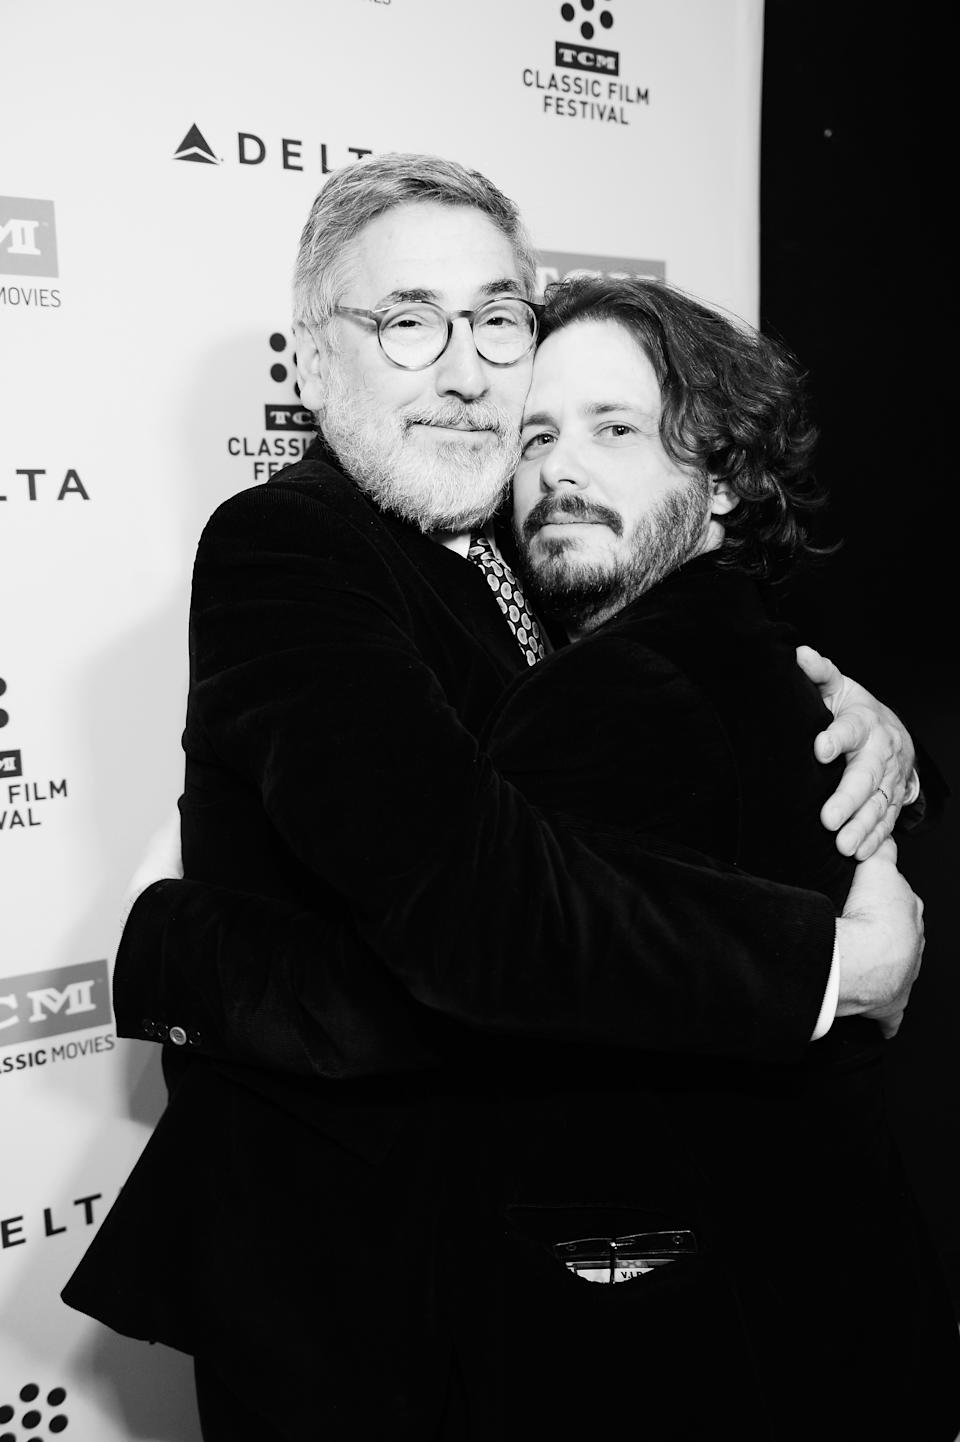 LOS ANGELES, CA - APRIL 08:  (EDITORS NOTE: Image was shot in black and white. Color version not available) Directors John Landis (L) and Edgar Wright attend the screening of 'The Kentucky Fried Movie' during the 2017 TCM Classic Film Festival on April 8, 2017 in Los Angeles, California. 26657_005  (Photo by Stefanie Keenan/Getty Images for TCM)